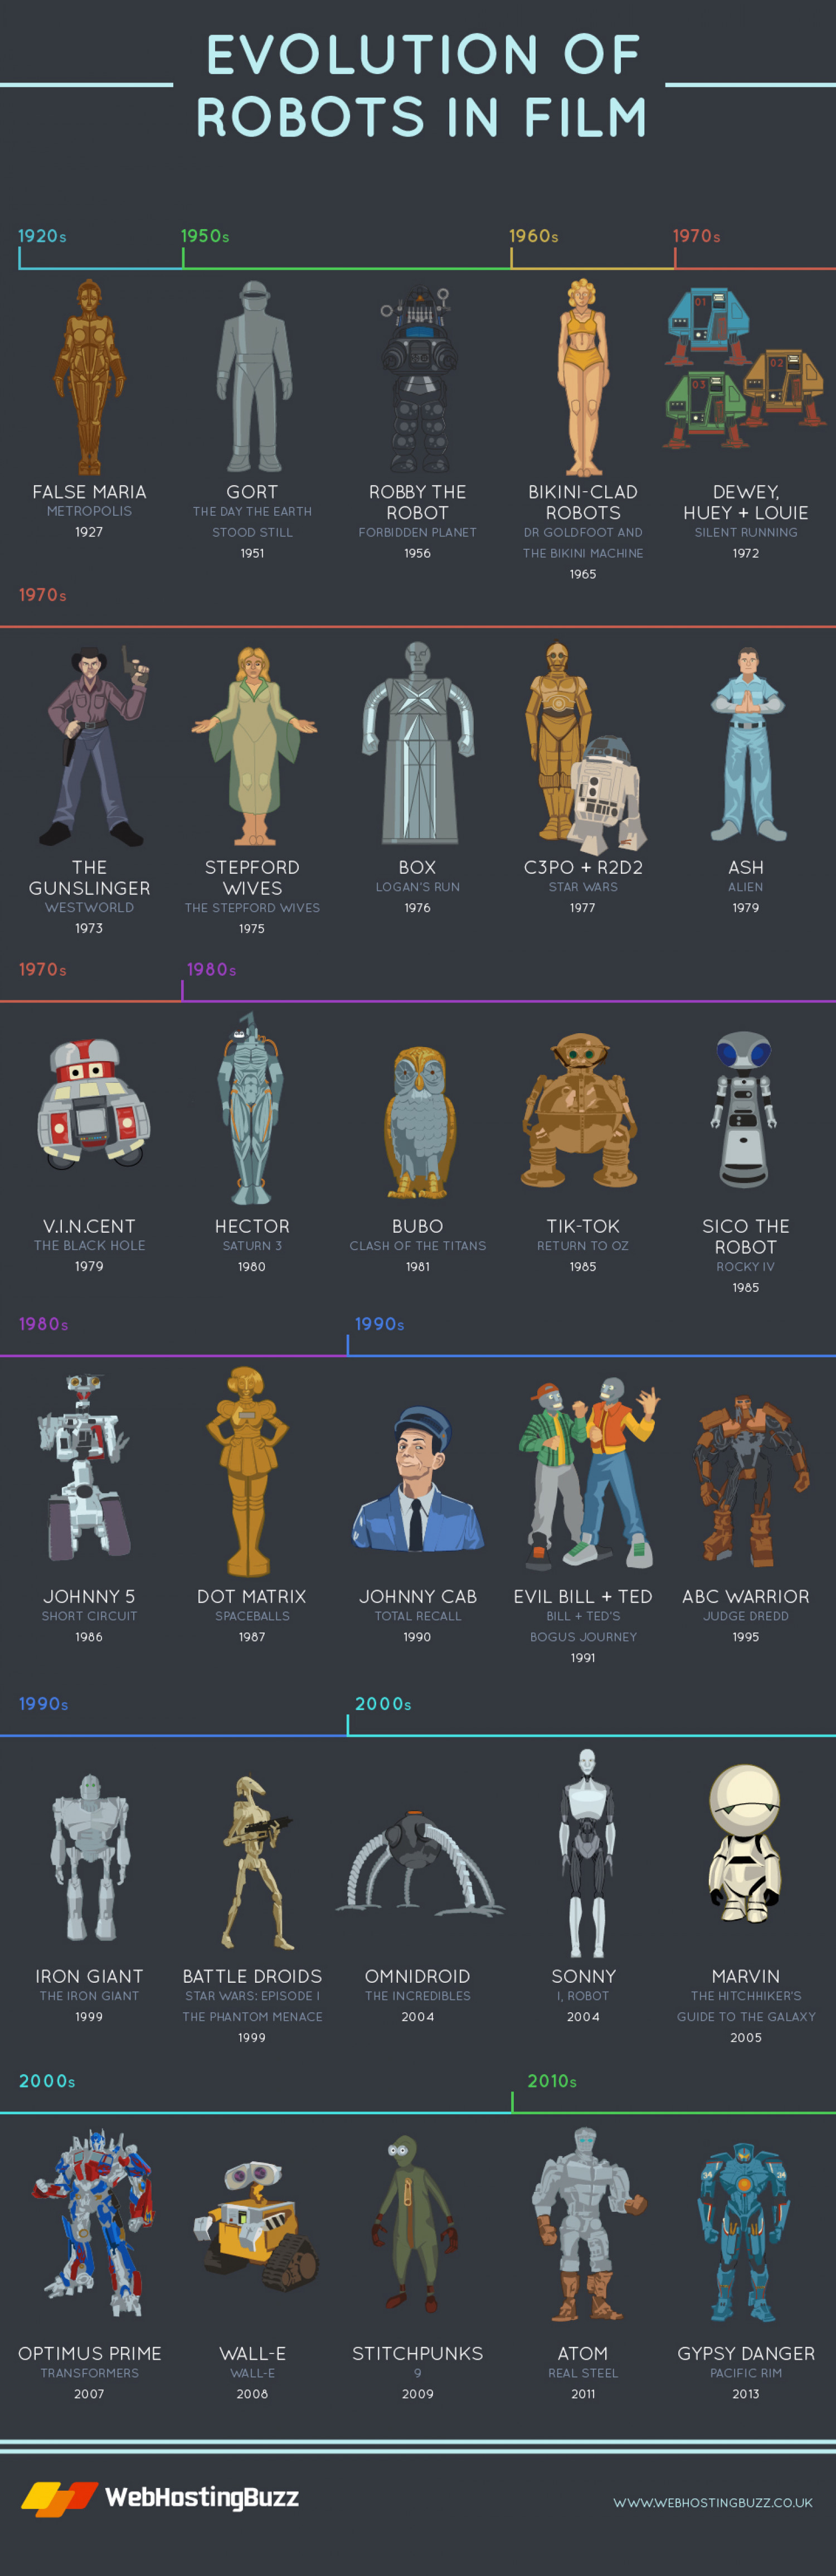 Evolution of Robots in Film Infographic